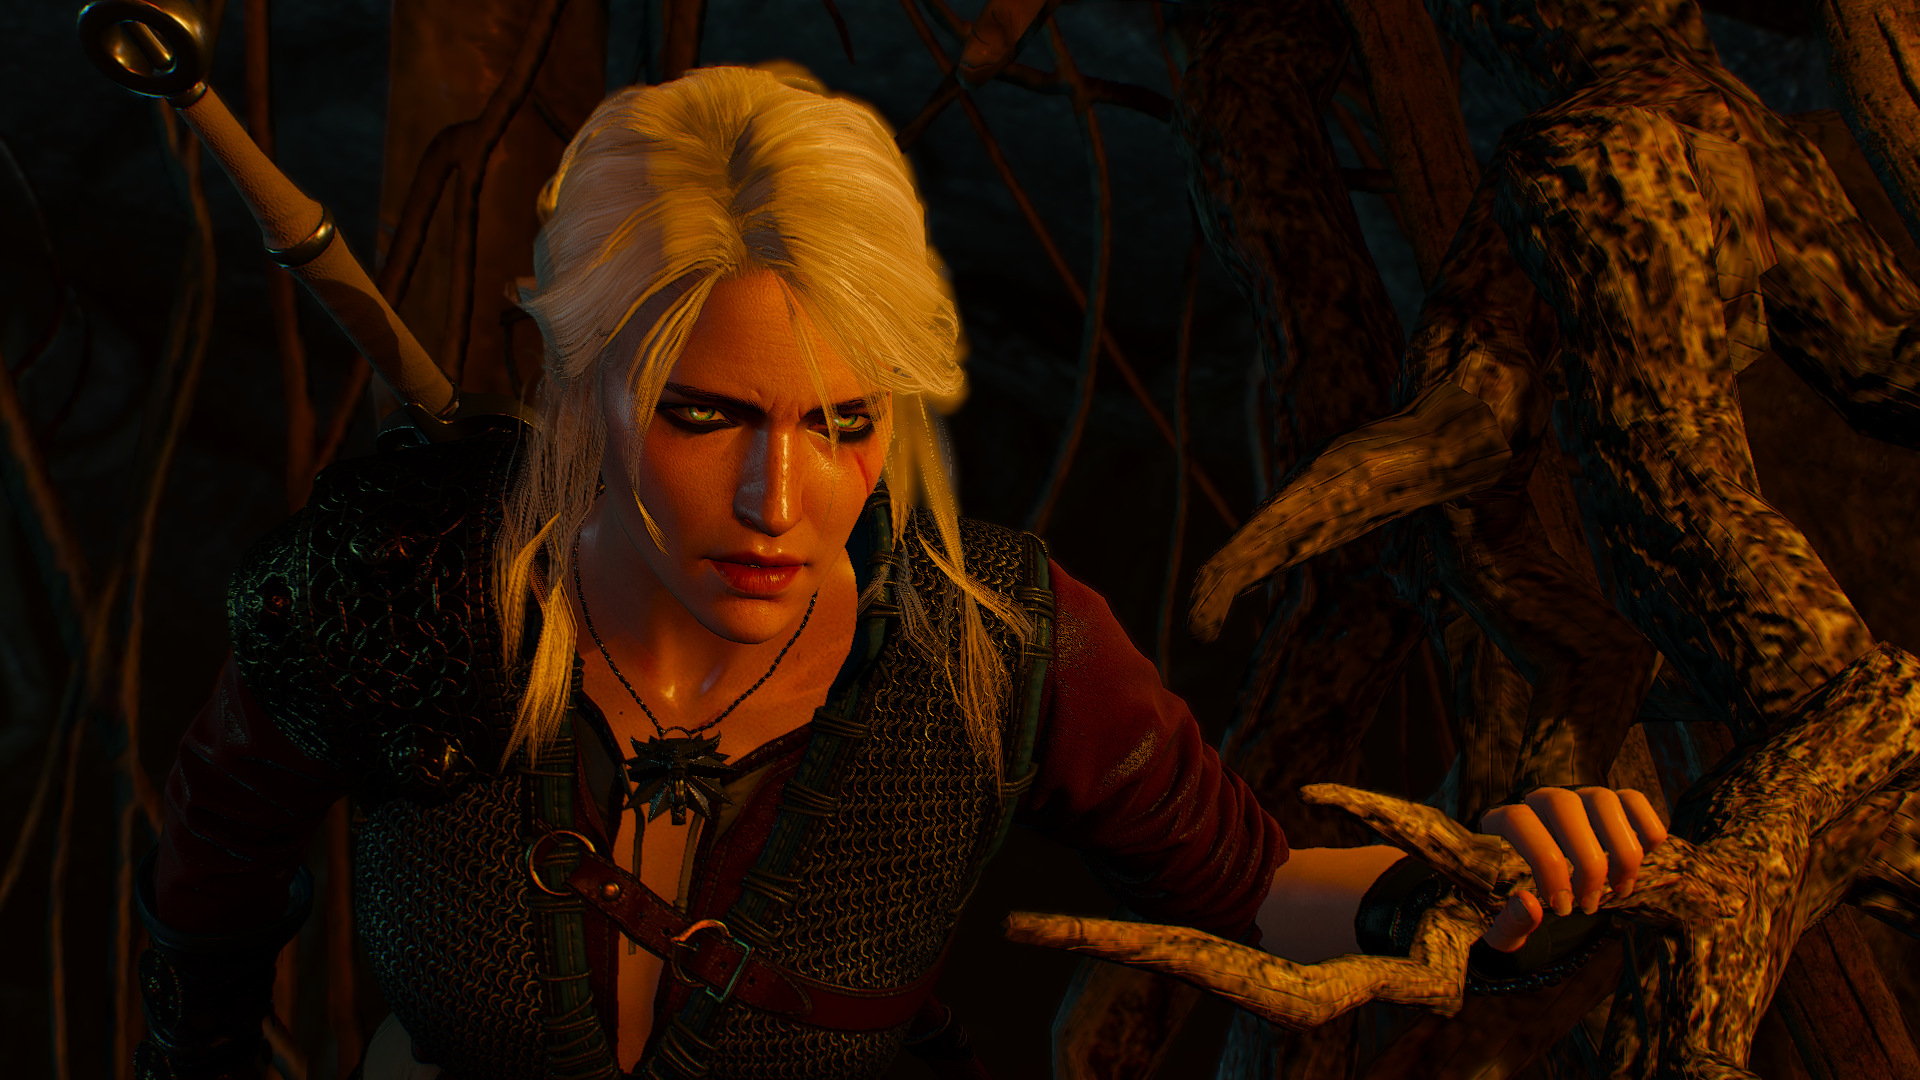 Cirilla the Witcher at The Witcher 3 Nexus - Mods and